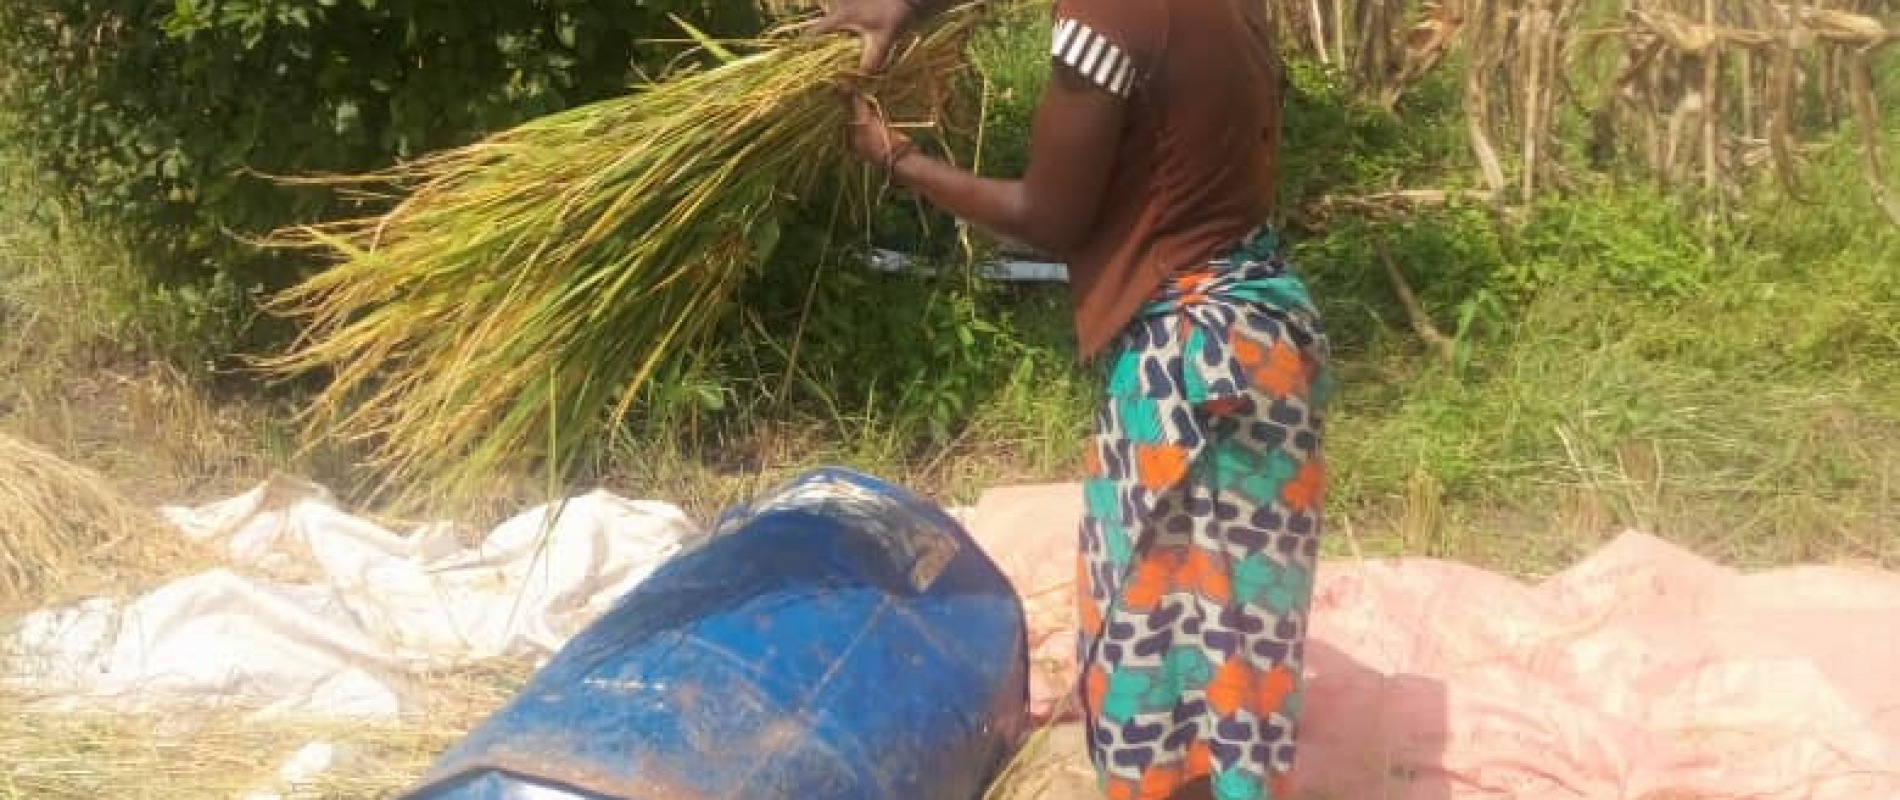 Rice plugging by a woman after harvesting in her farm